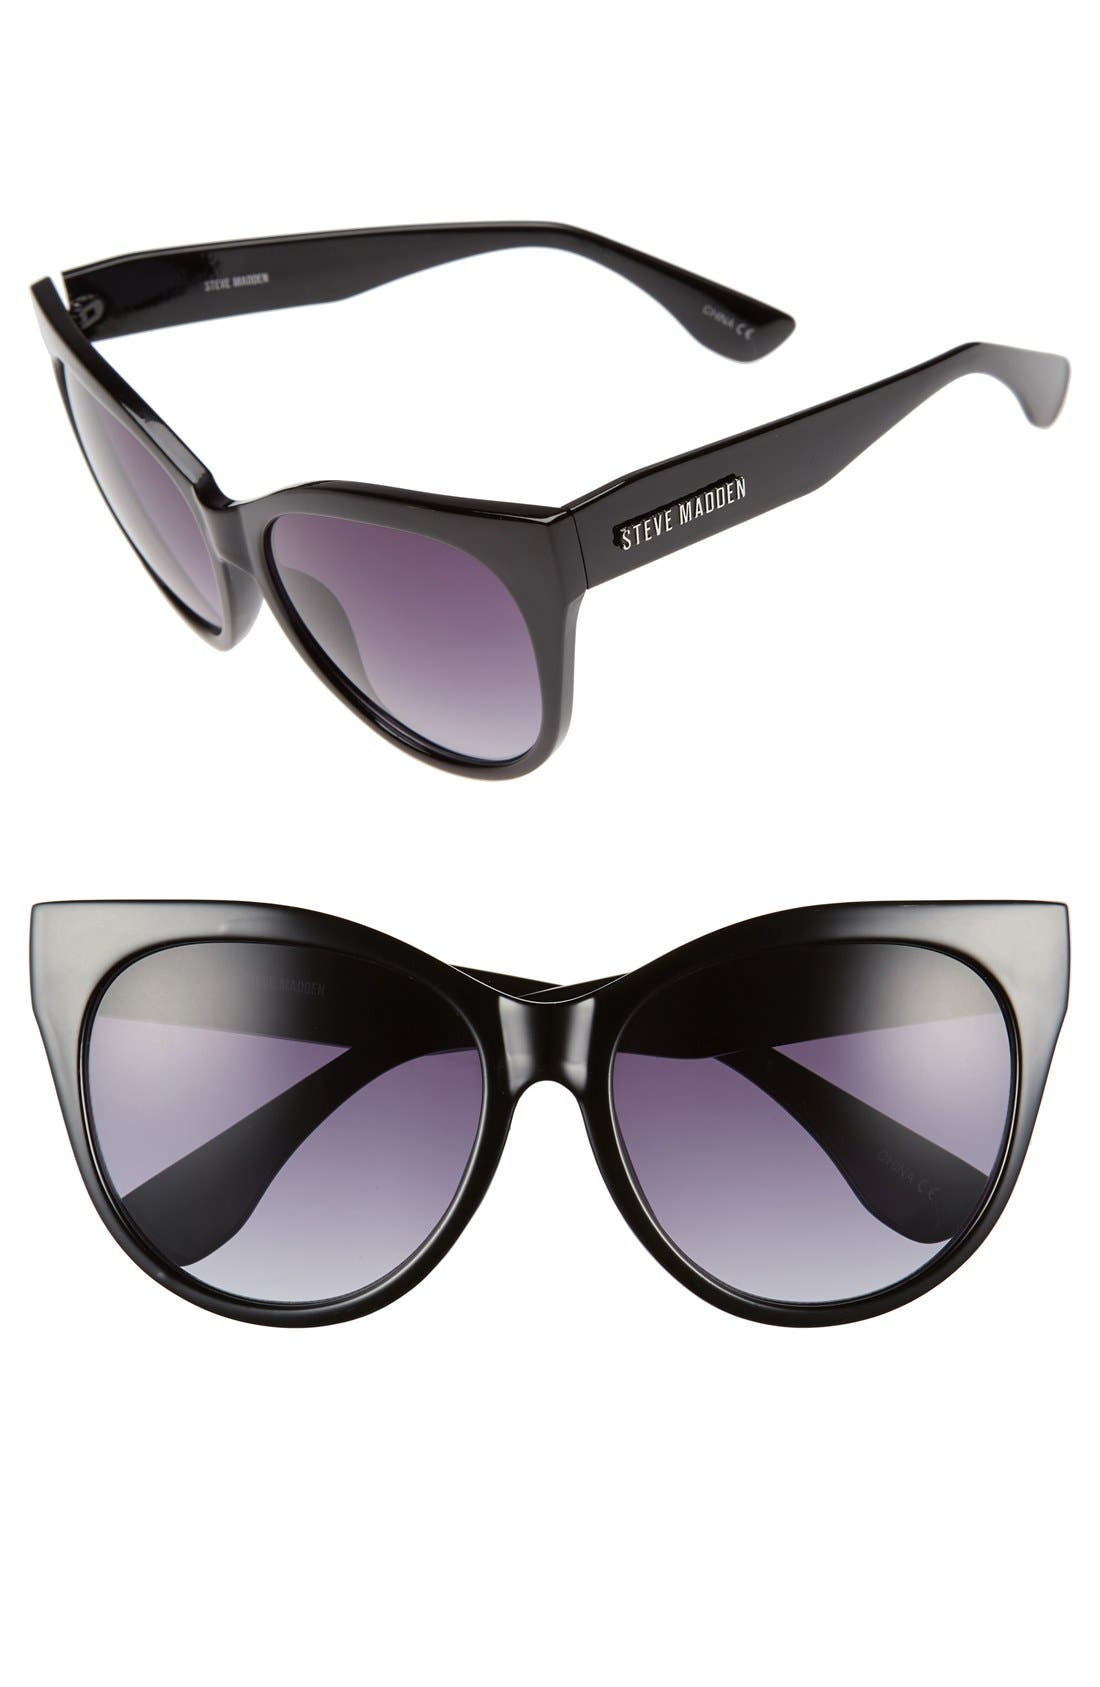 Main Image - Steve Madden 58mm Oversized Cat Eye Sunglasses